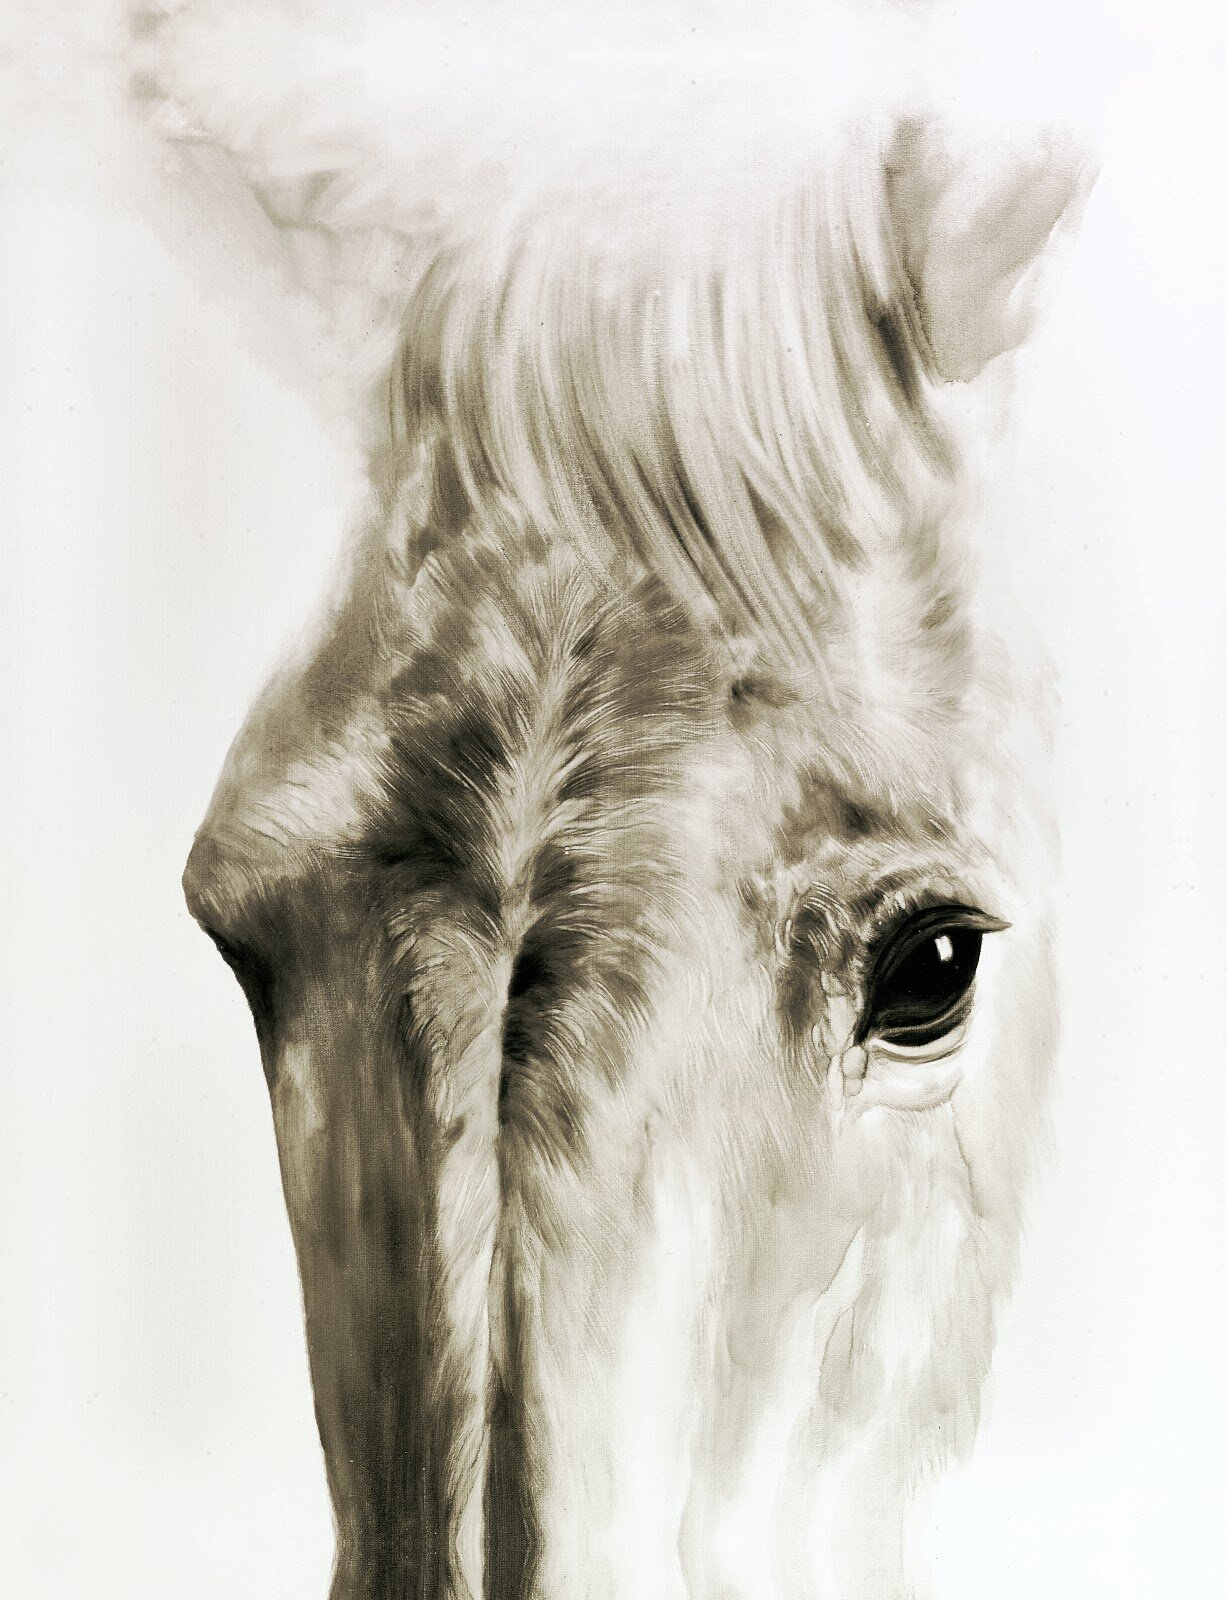 Union Rustic White Horse I Oil Painting Print On Wrapped Canvas